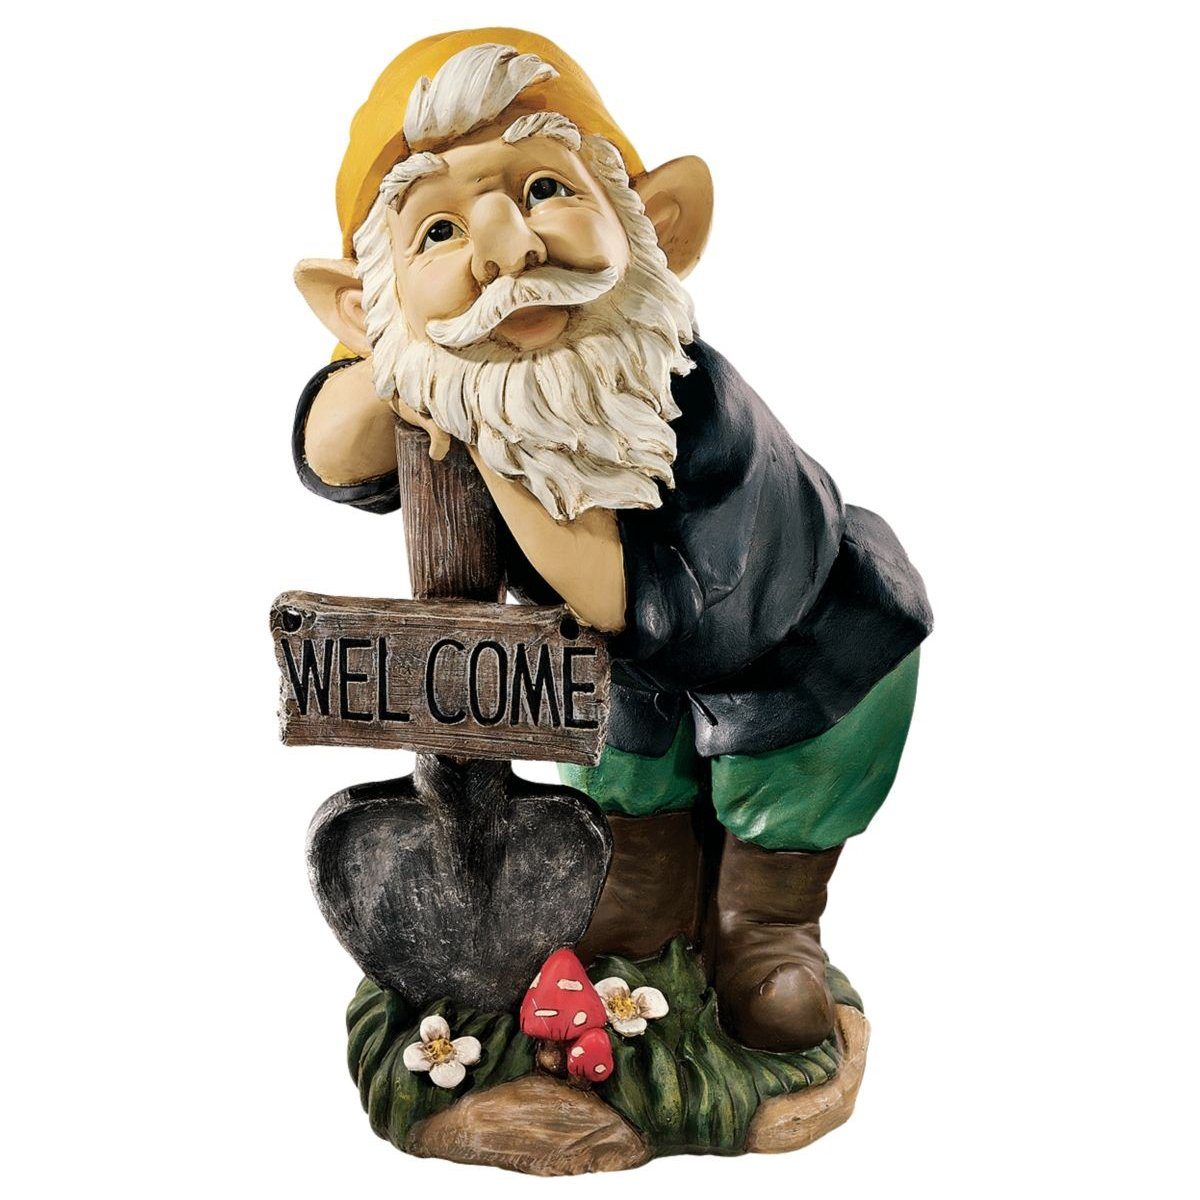 Garden Gnome Statue - Black Forest Welcoming Garden Gnome - Lawn Gnome Design Toscano JE10111601